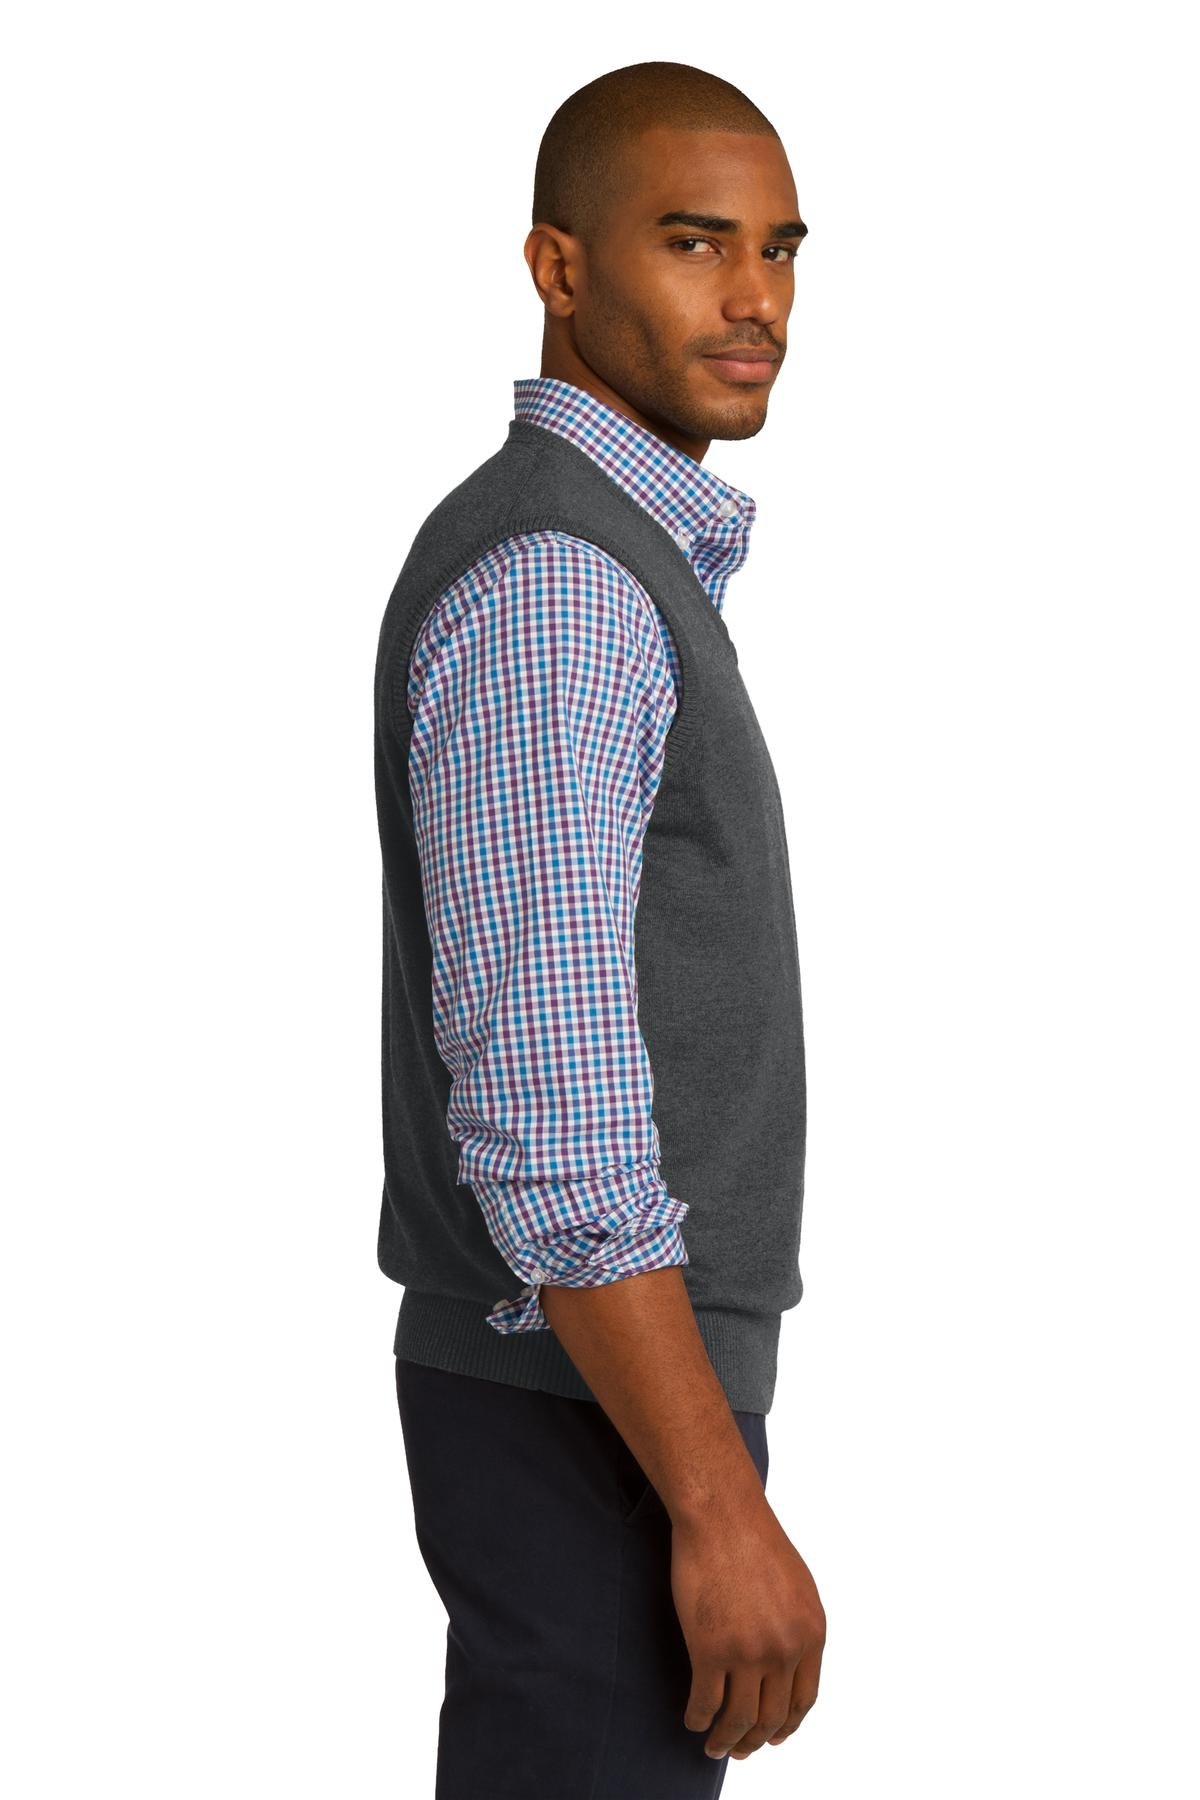 Mens Sweater Vest - RCG1350